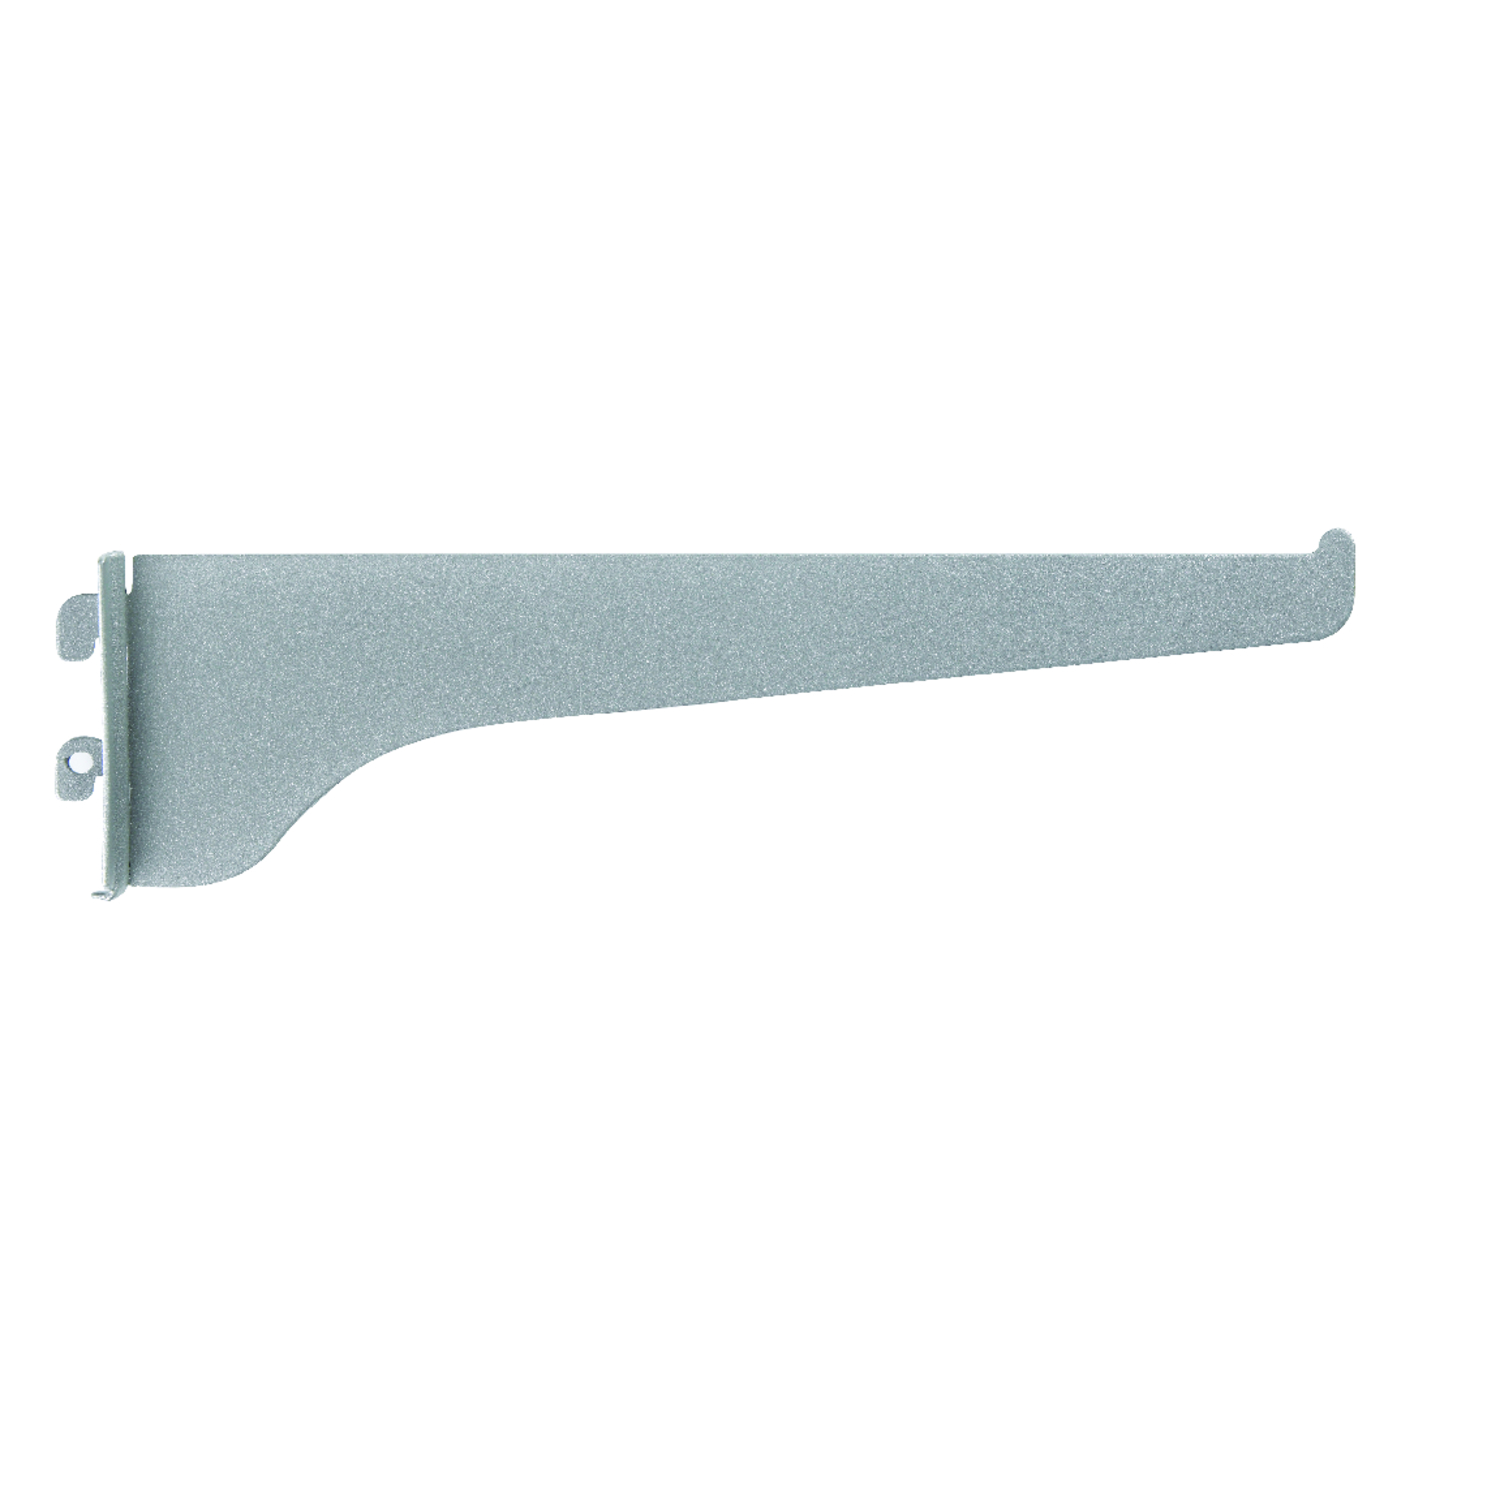 Knape & Vogt  Titanium  White  Steel  16 Ga. Regular Duty  Bracket  2.5 in. H x 0.5 in. W x 10 in. L